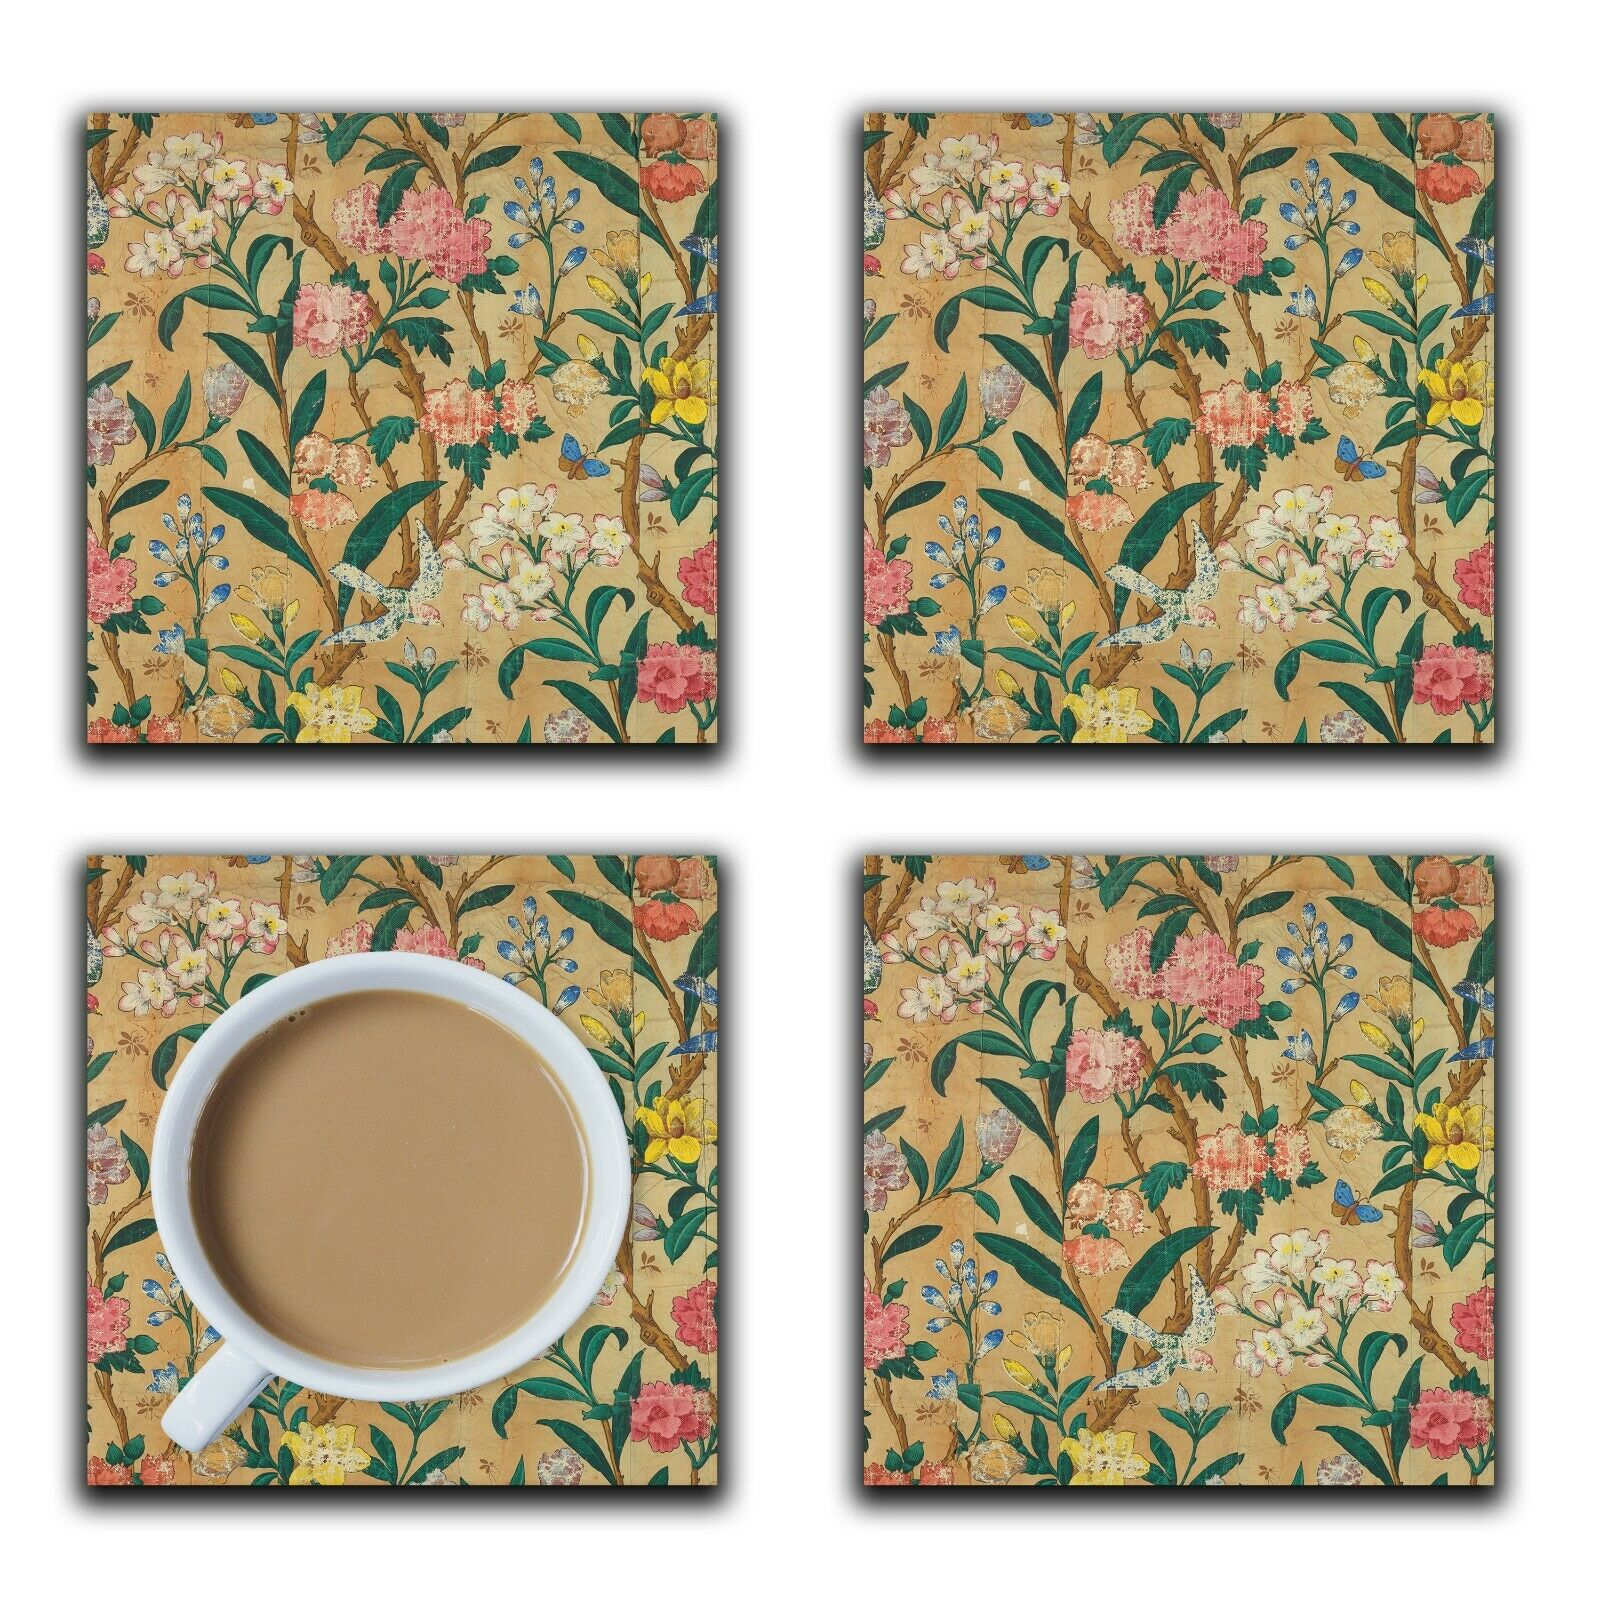 Embossi Printed English Shabby Chic Floral, wood or ceramic tile, set of 4